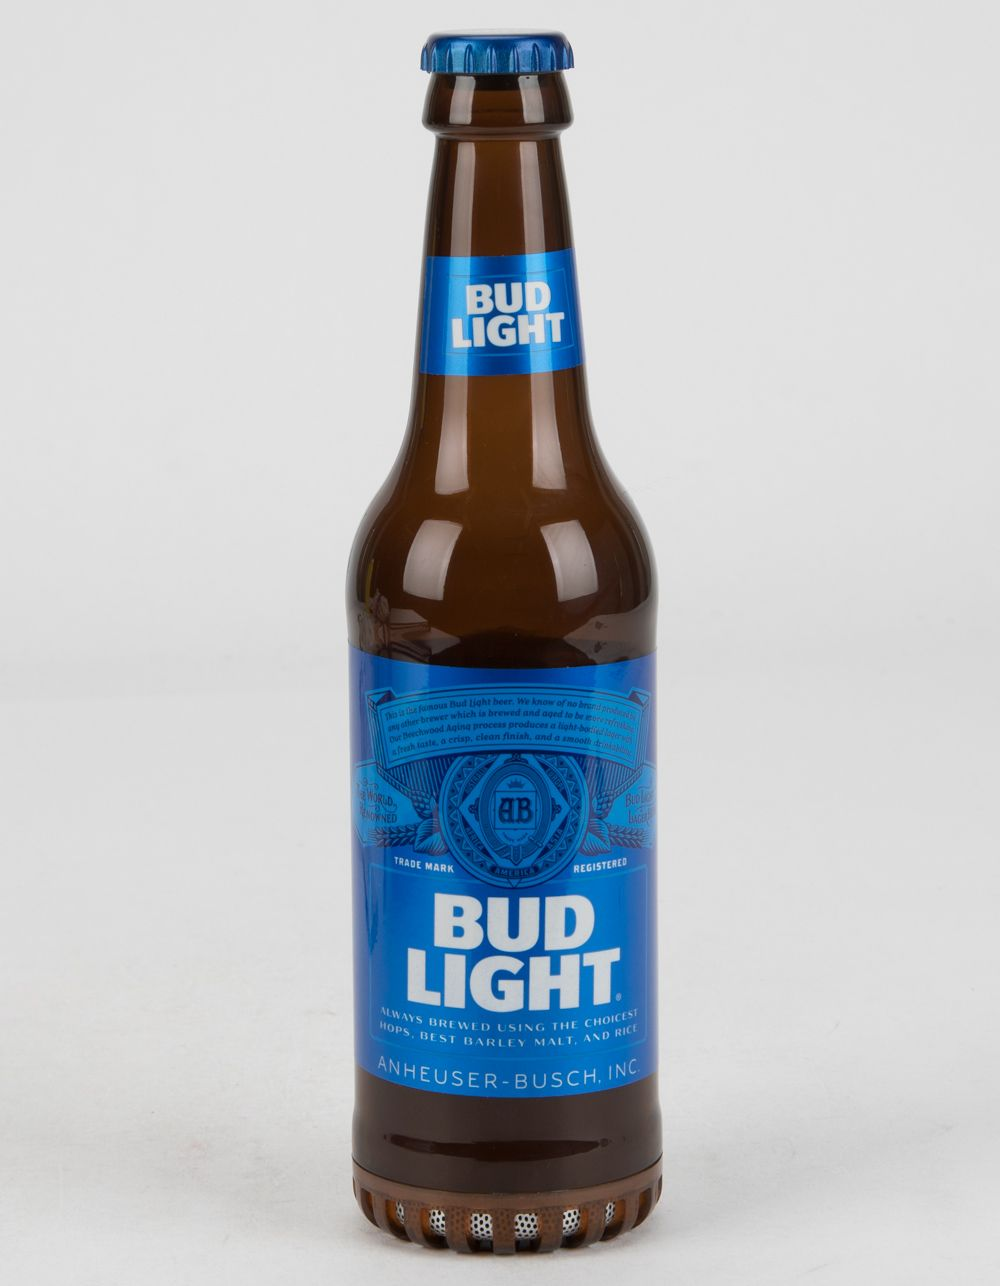 Bud Light Bottle Bluetooth Speaker. Bluetooth speaker for smartphones, tablets, and MP3 players. Actual weight & height of a real Bud Light beer bottle. Bluetooth wireless connection up to 30 ft. Dimensions: 10.5